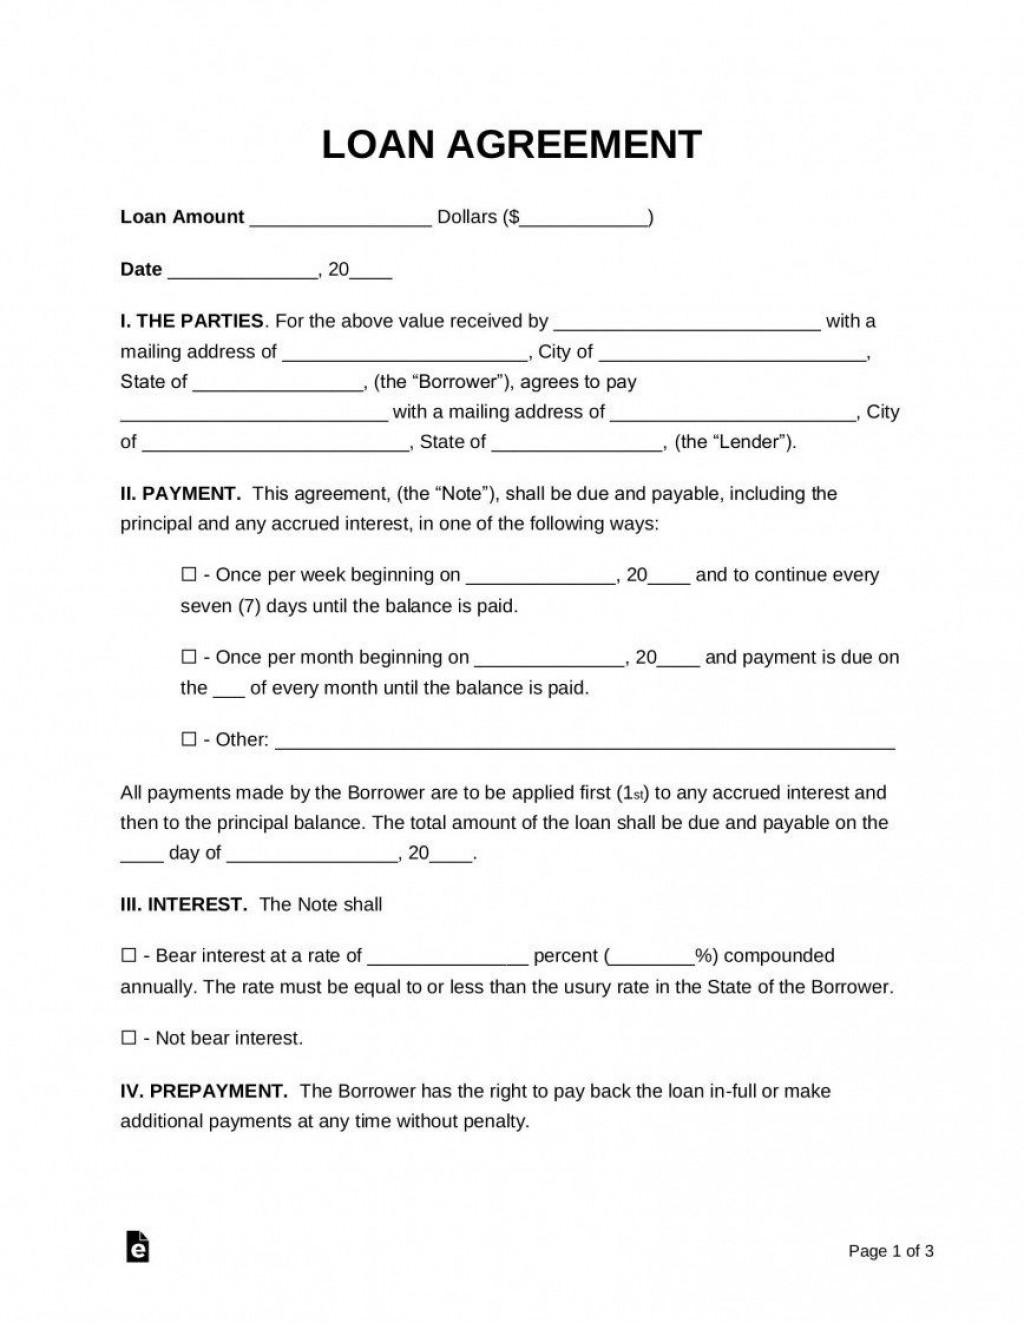 006 Exceptional Simple Family Loan Agreement Template Australia Inspiration Large